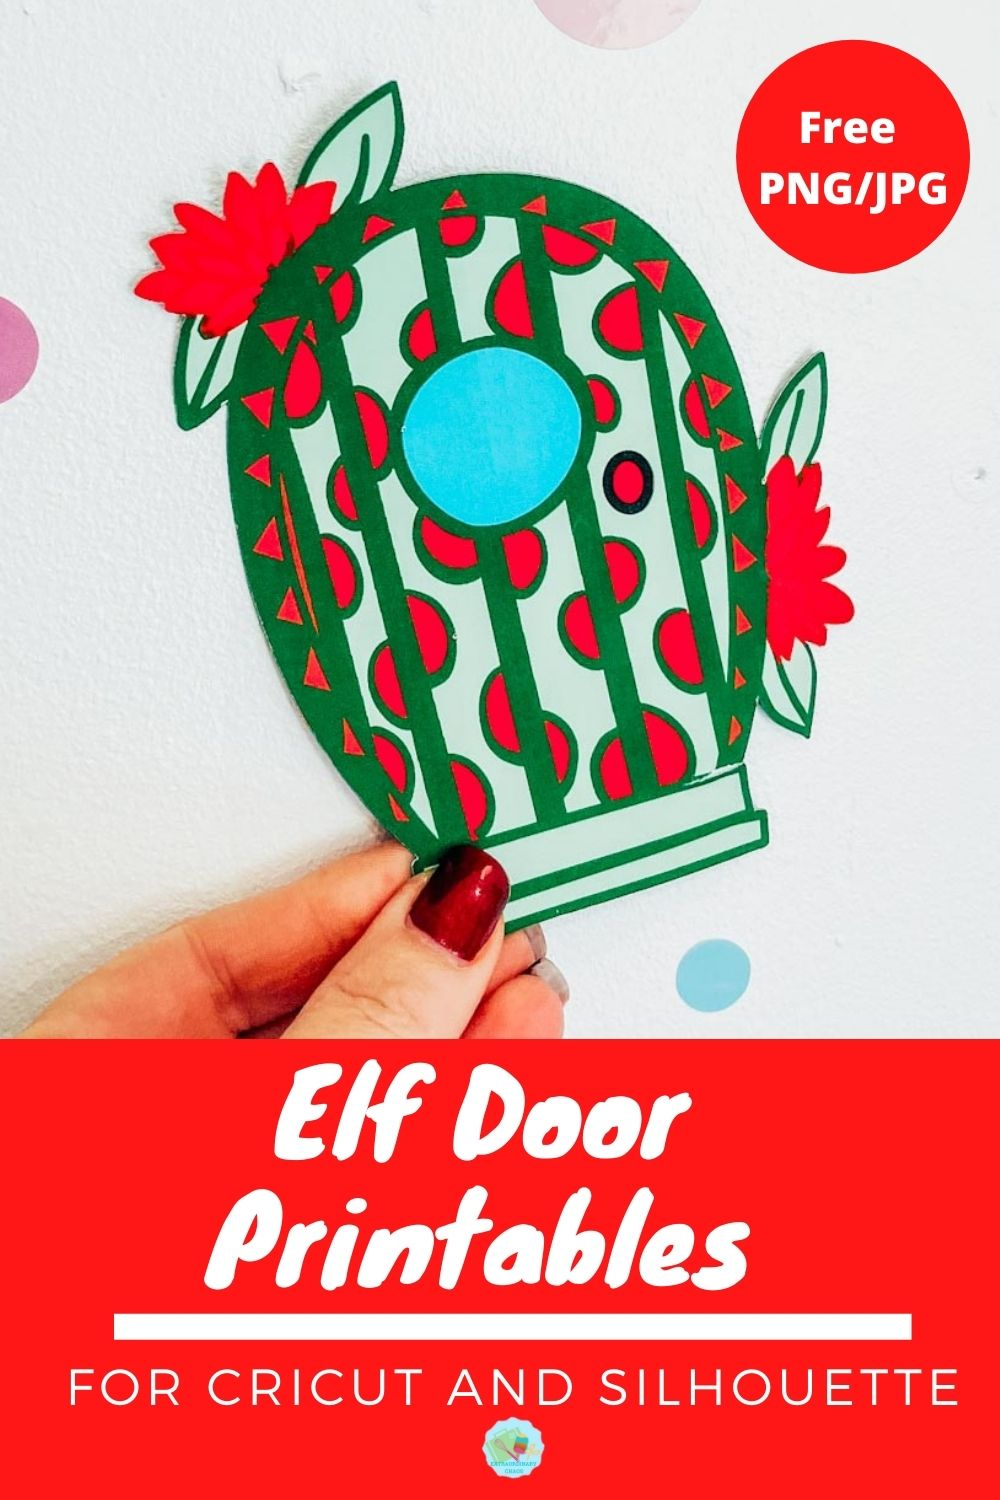 Free Elf door printables to print and cut with Cricut or silhouette -2